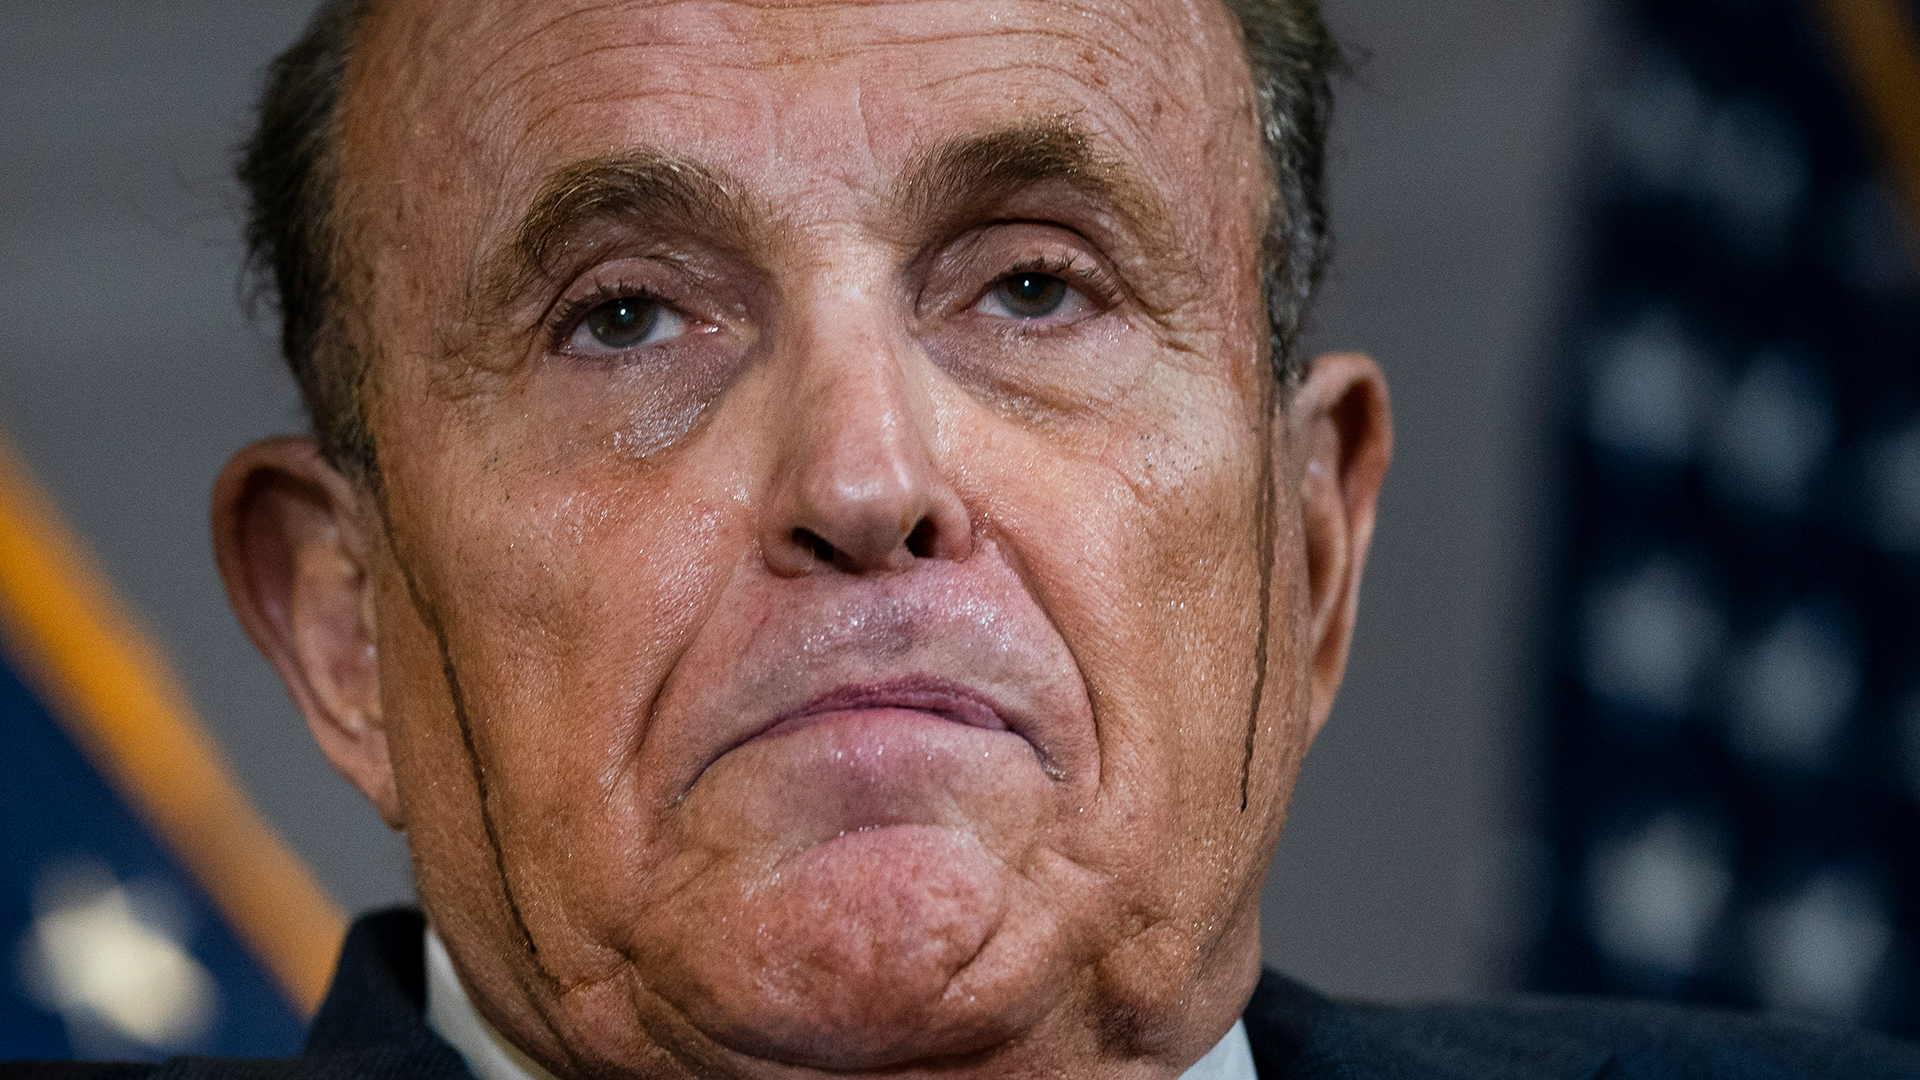 Rudy Giuliani's leaking hair dye takes social media by storm | WFLA